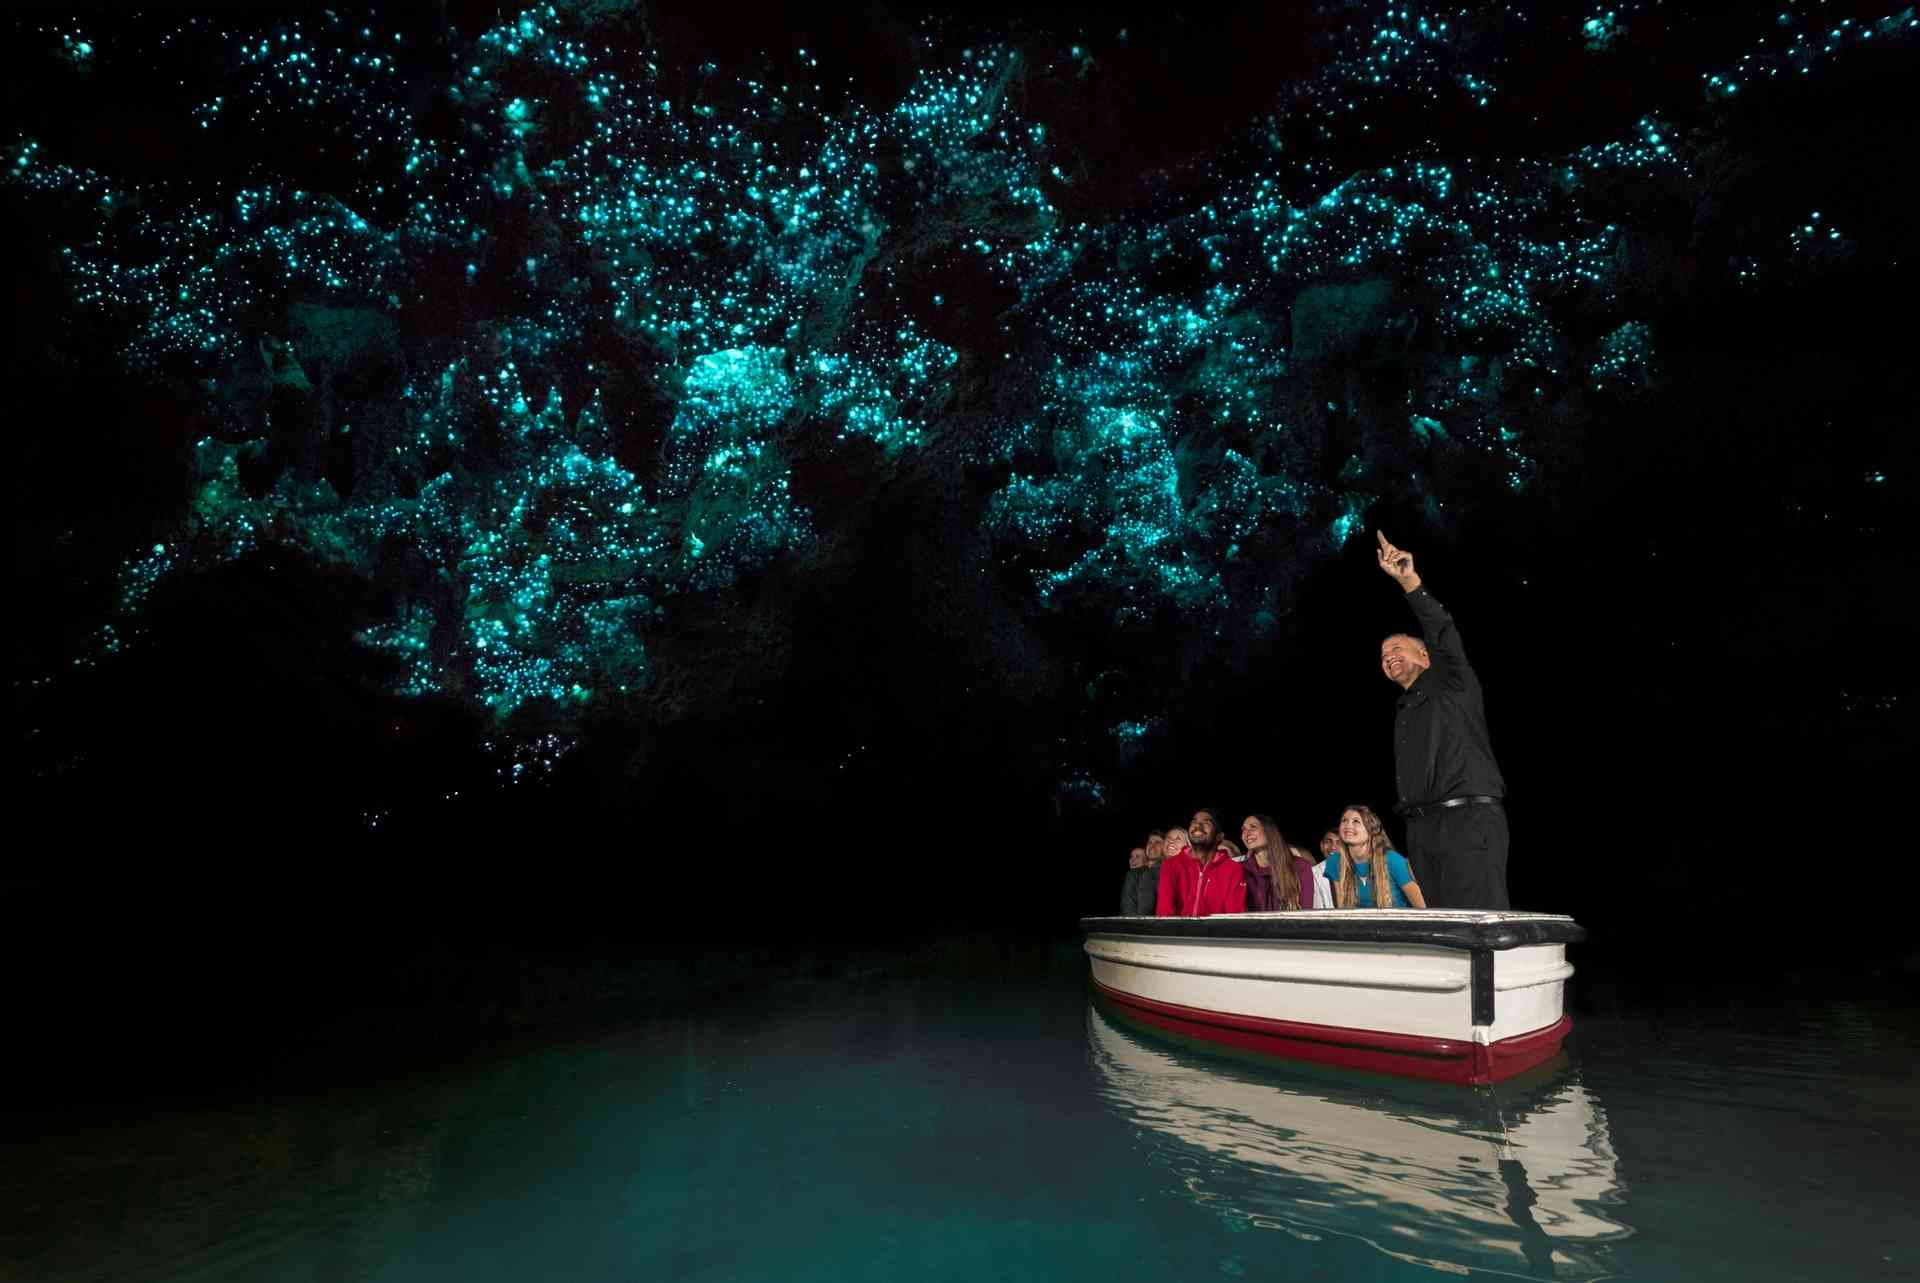 Waitomo Caves, New Zealand by Corin Walker Bain